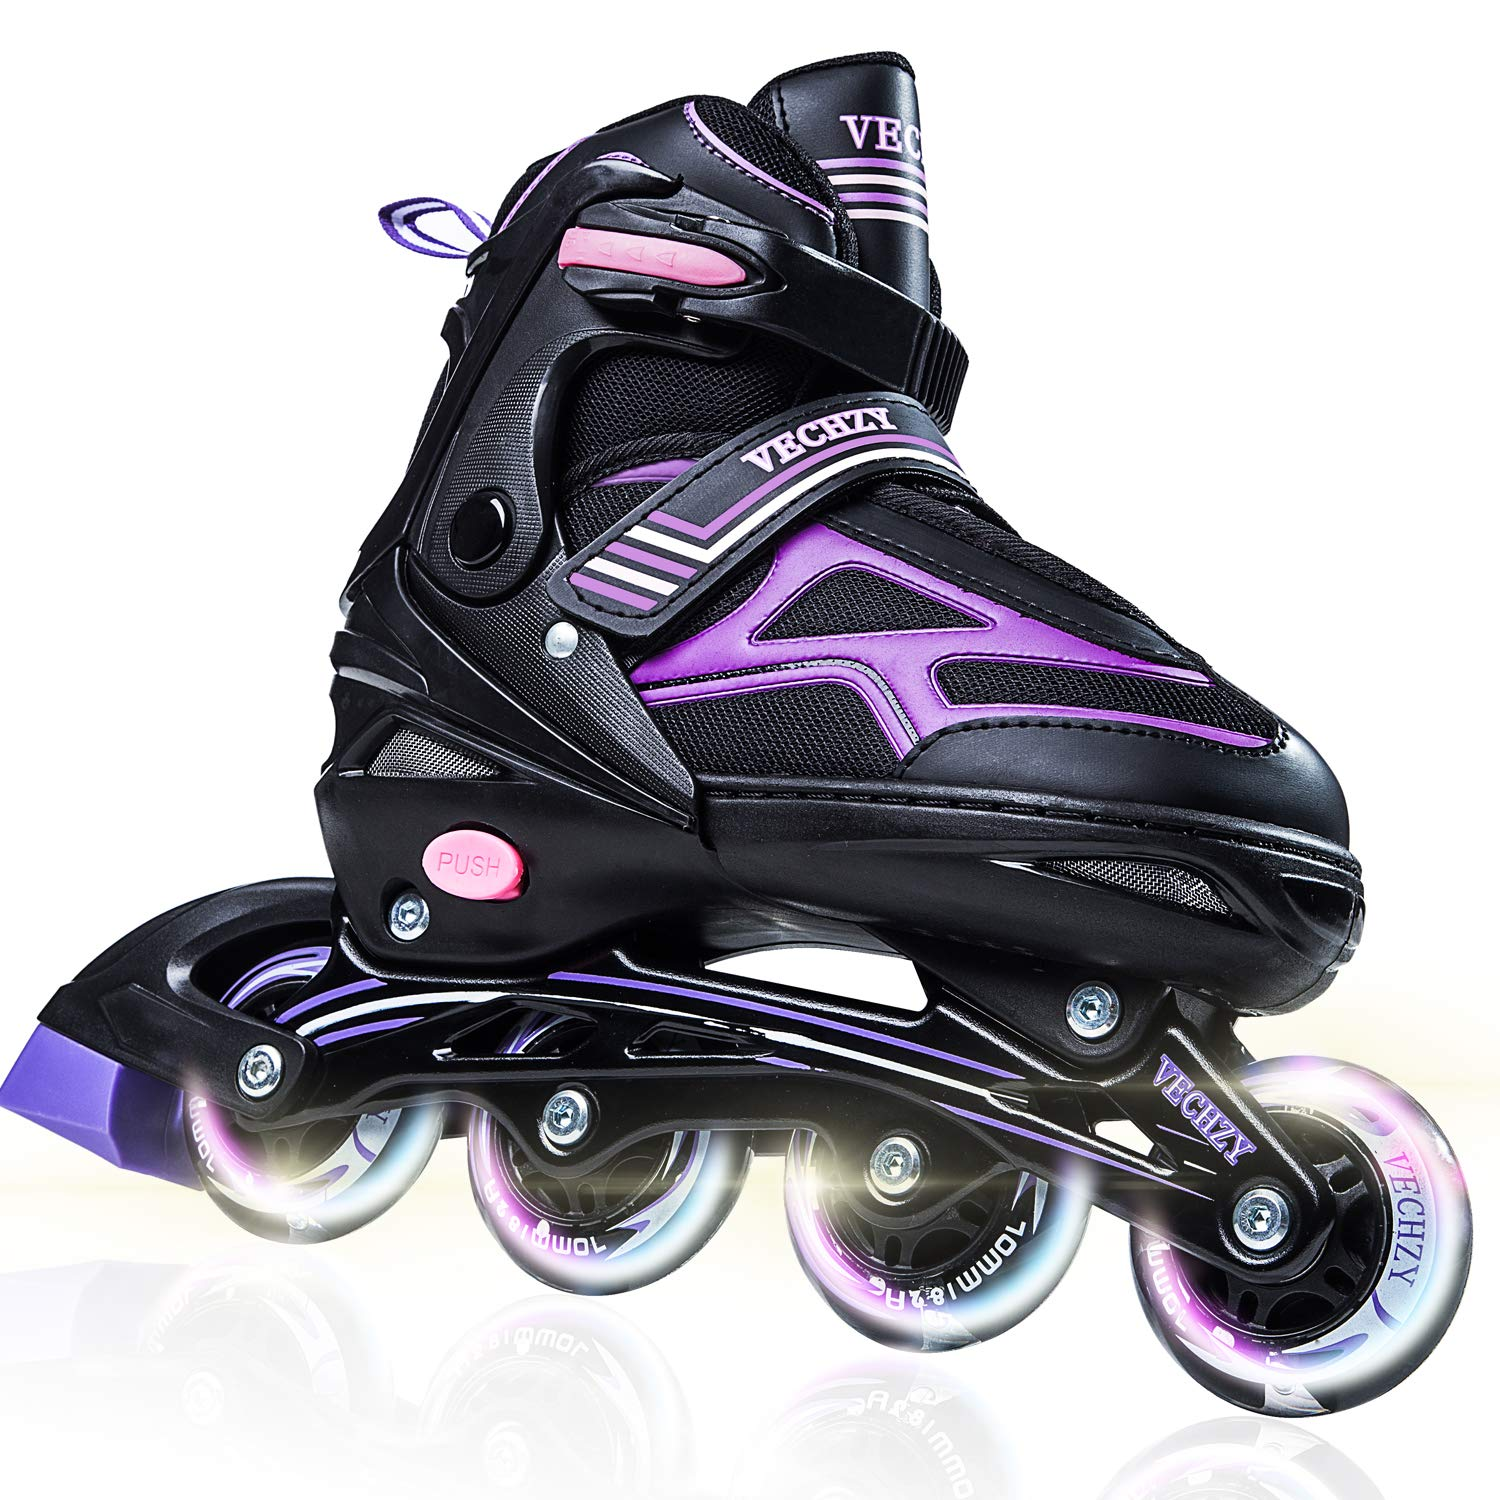 VECHZY Comfortable Adjustable Inline Skates with Light up Wheels, Beginner Illuminating Rollerblades for Kids, Women and Men